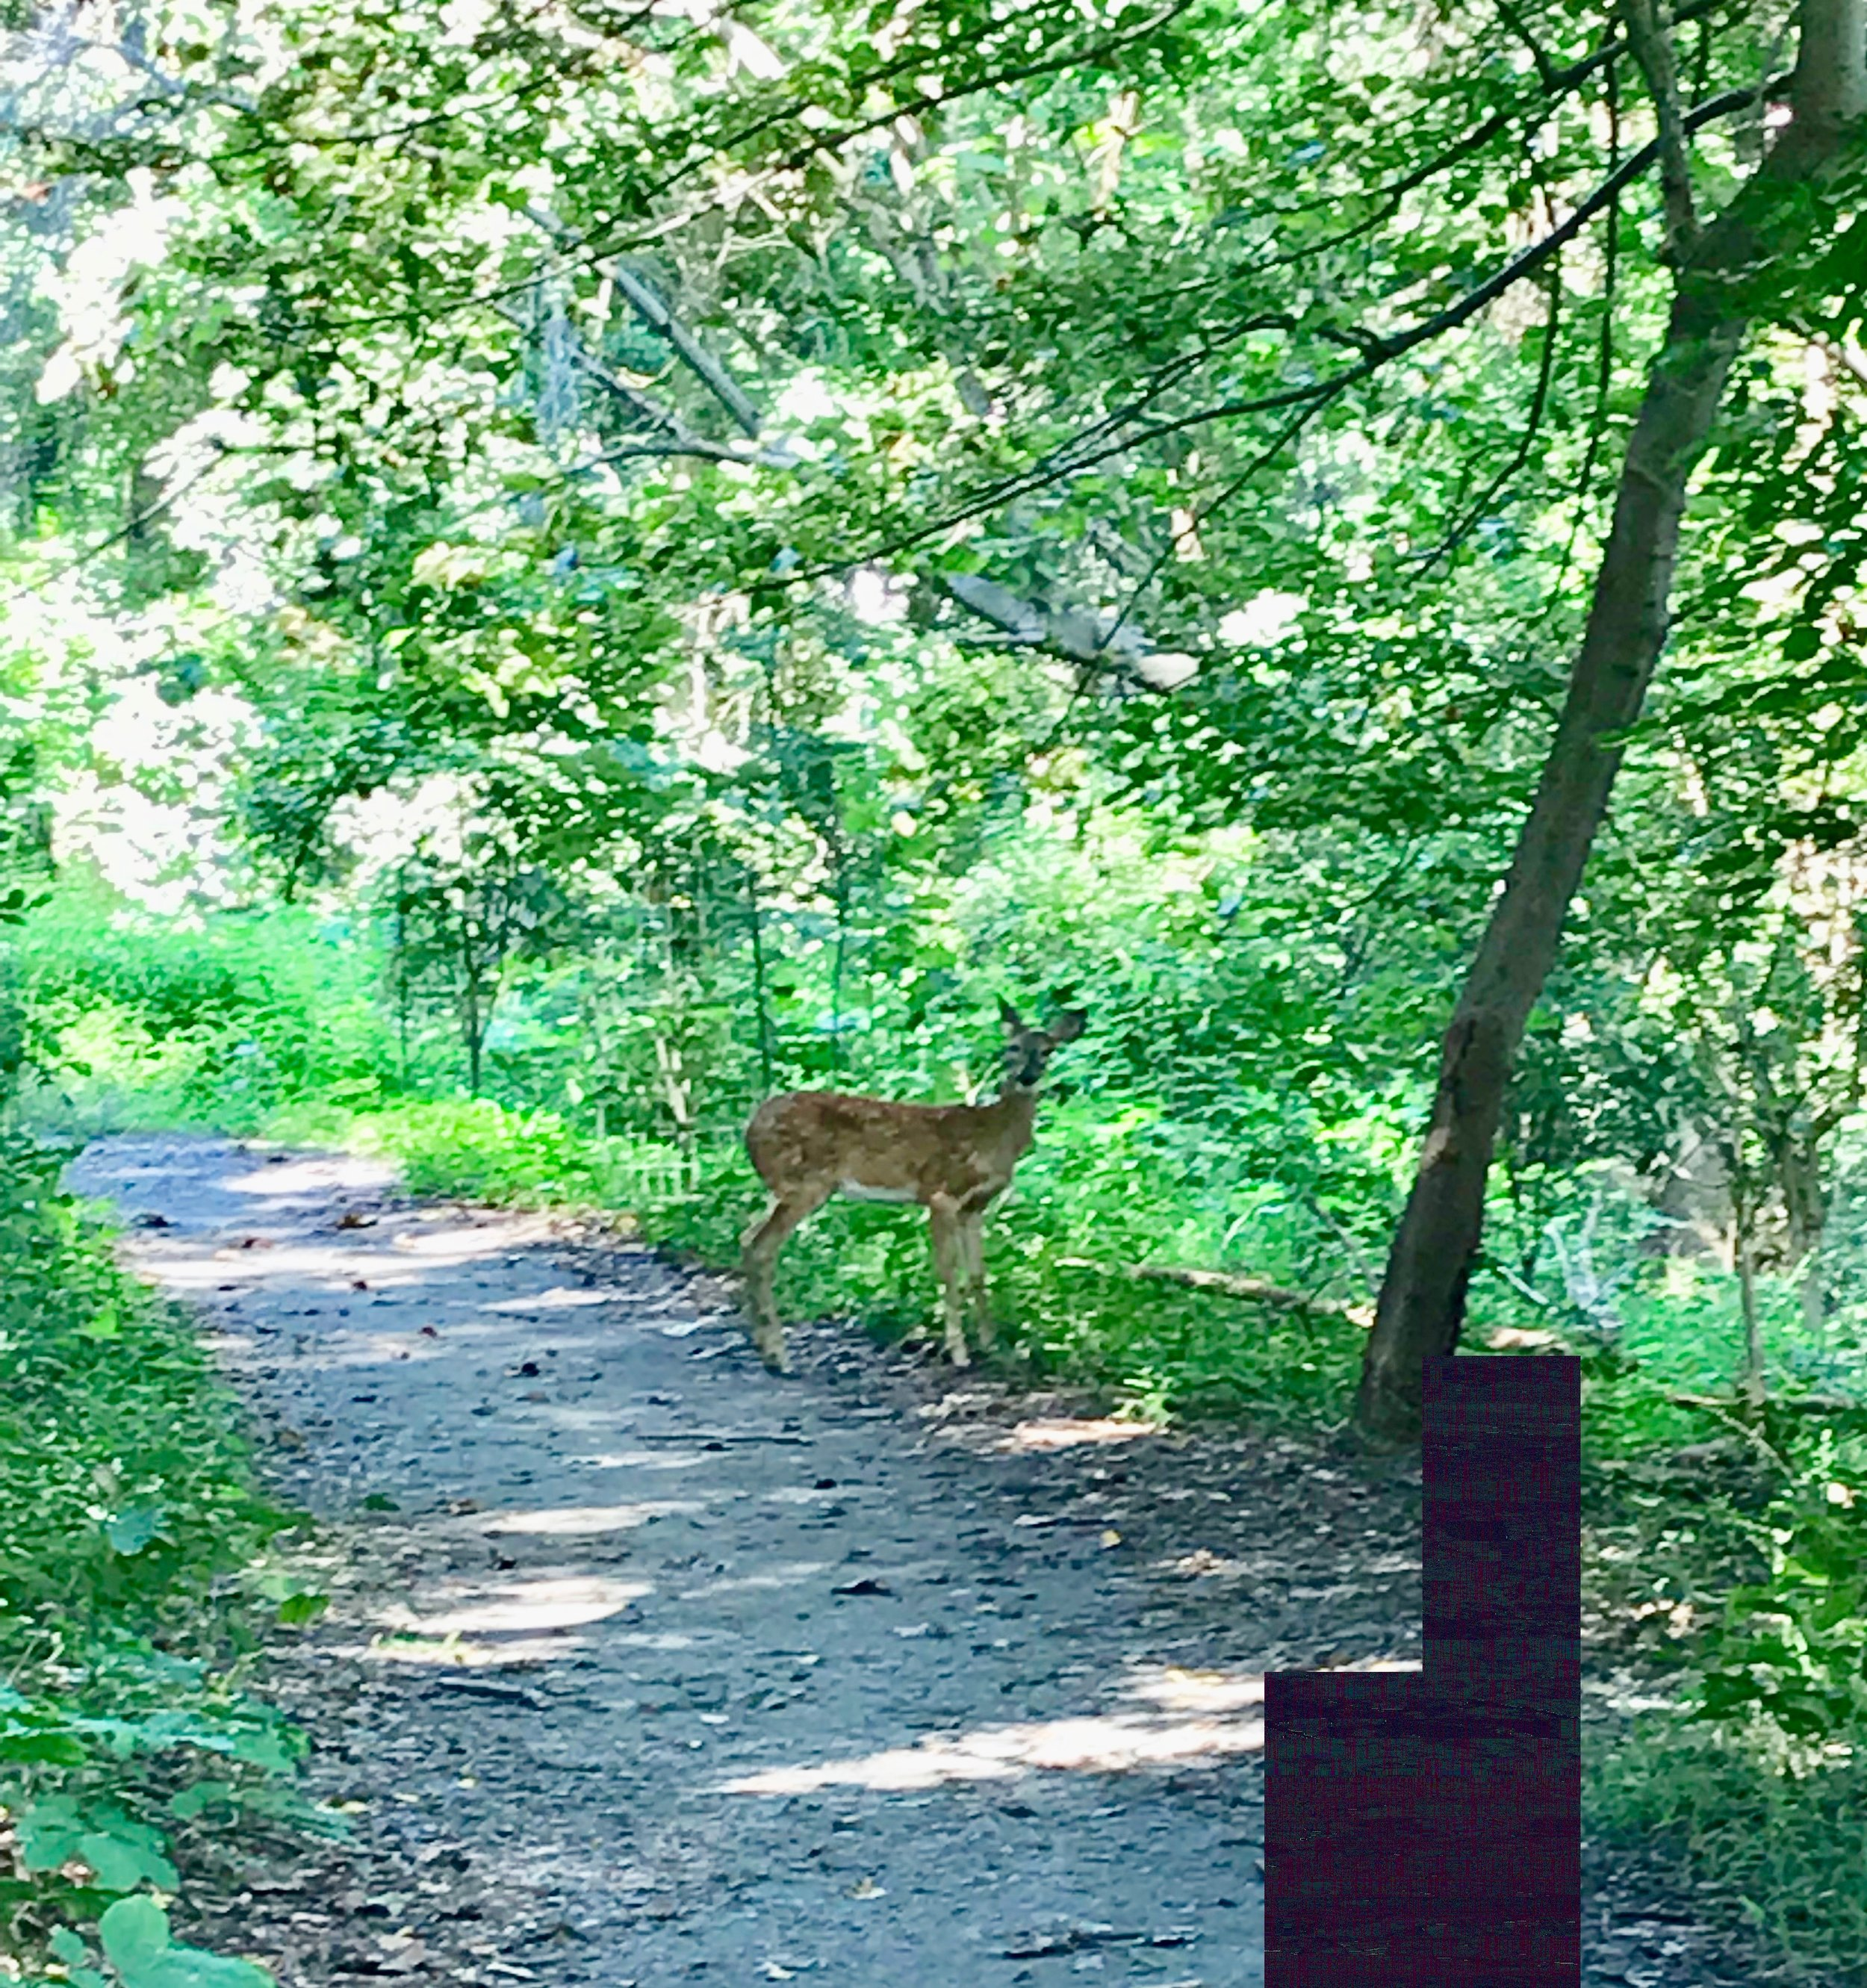 I was walking home from the DMV the other day and went through a park in Georgetown, and I turned the corner and there was a deer right in front of me!